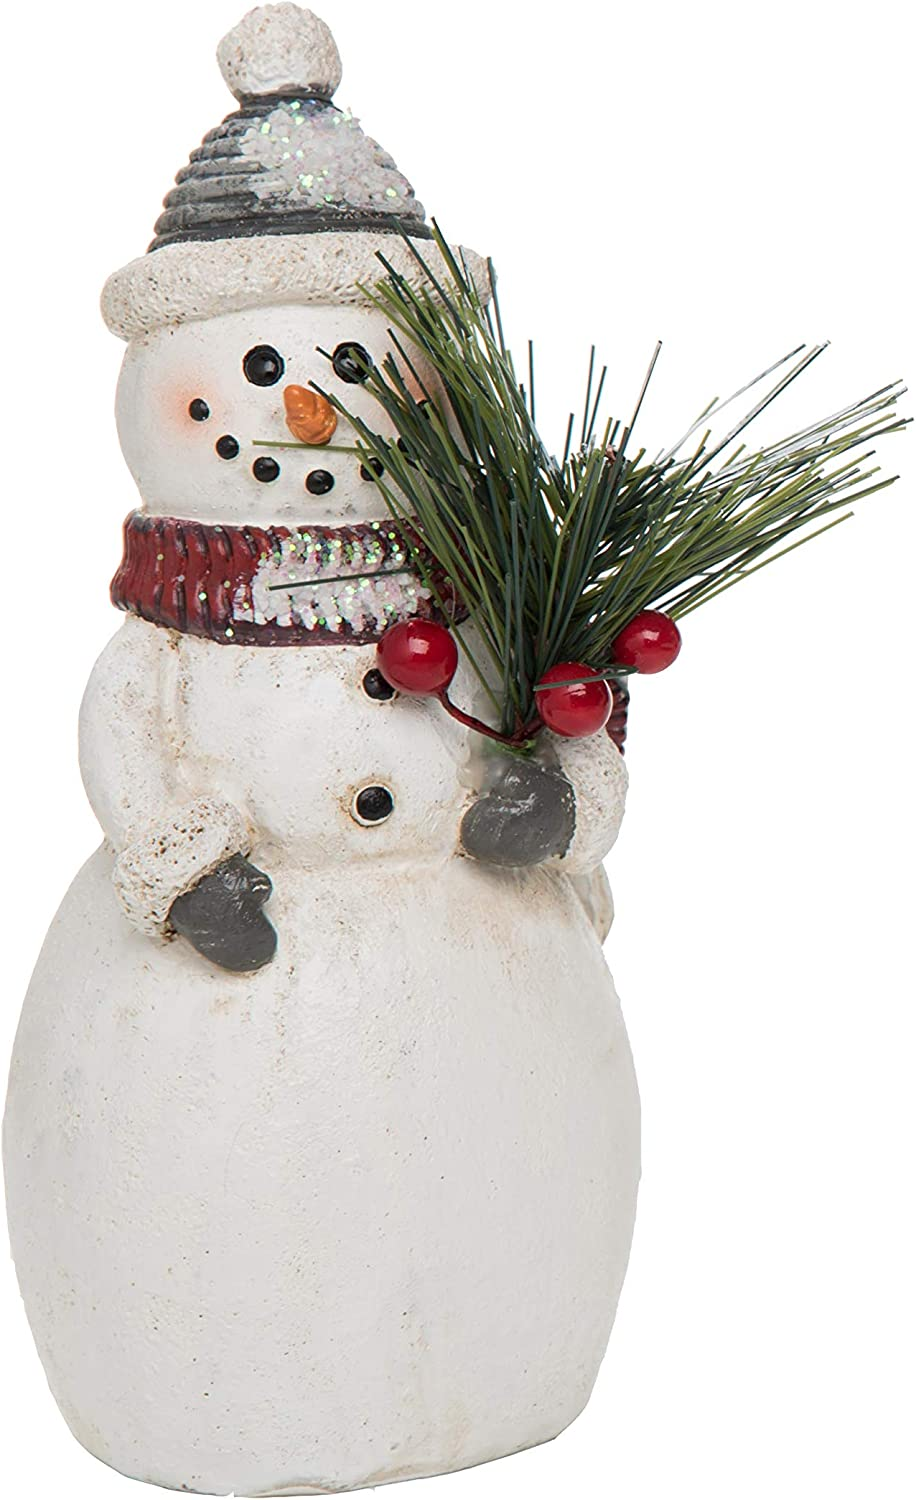 Transpac Imports Small Resin Traditional Snowman Figurines, White